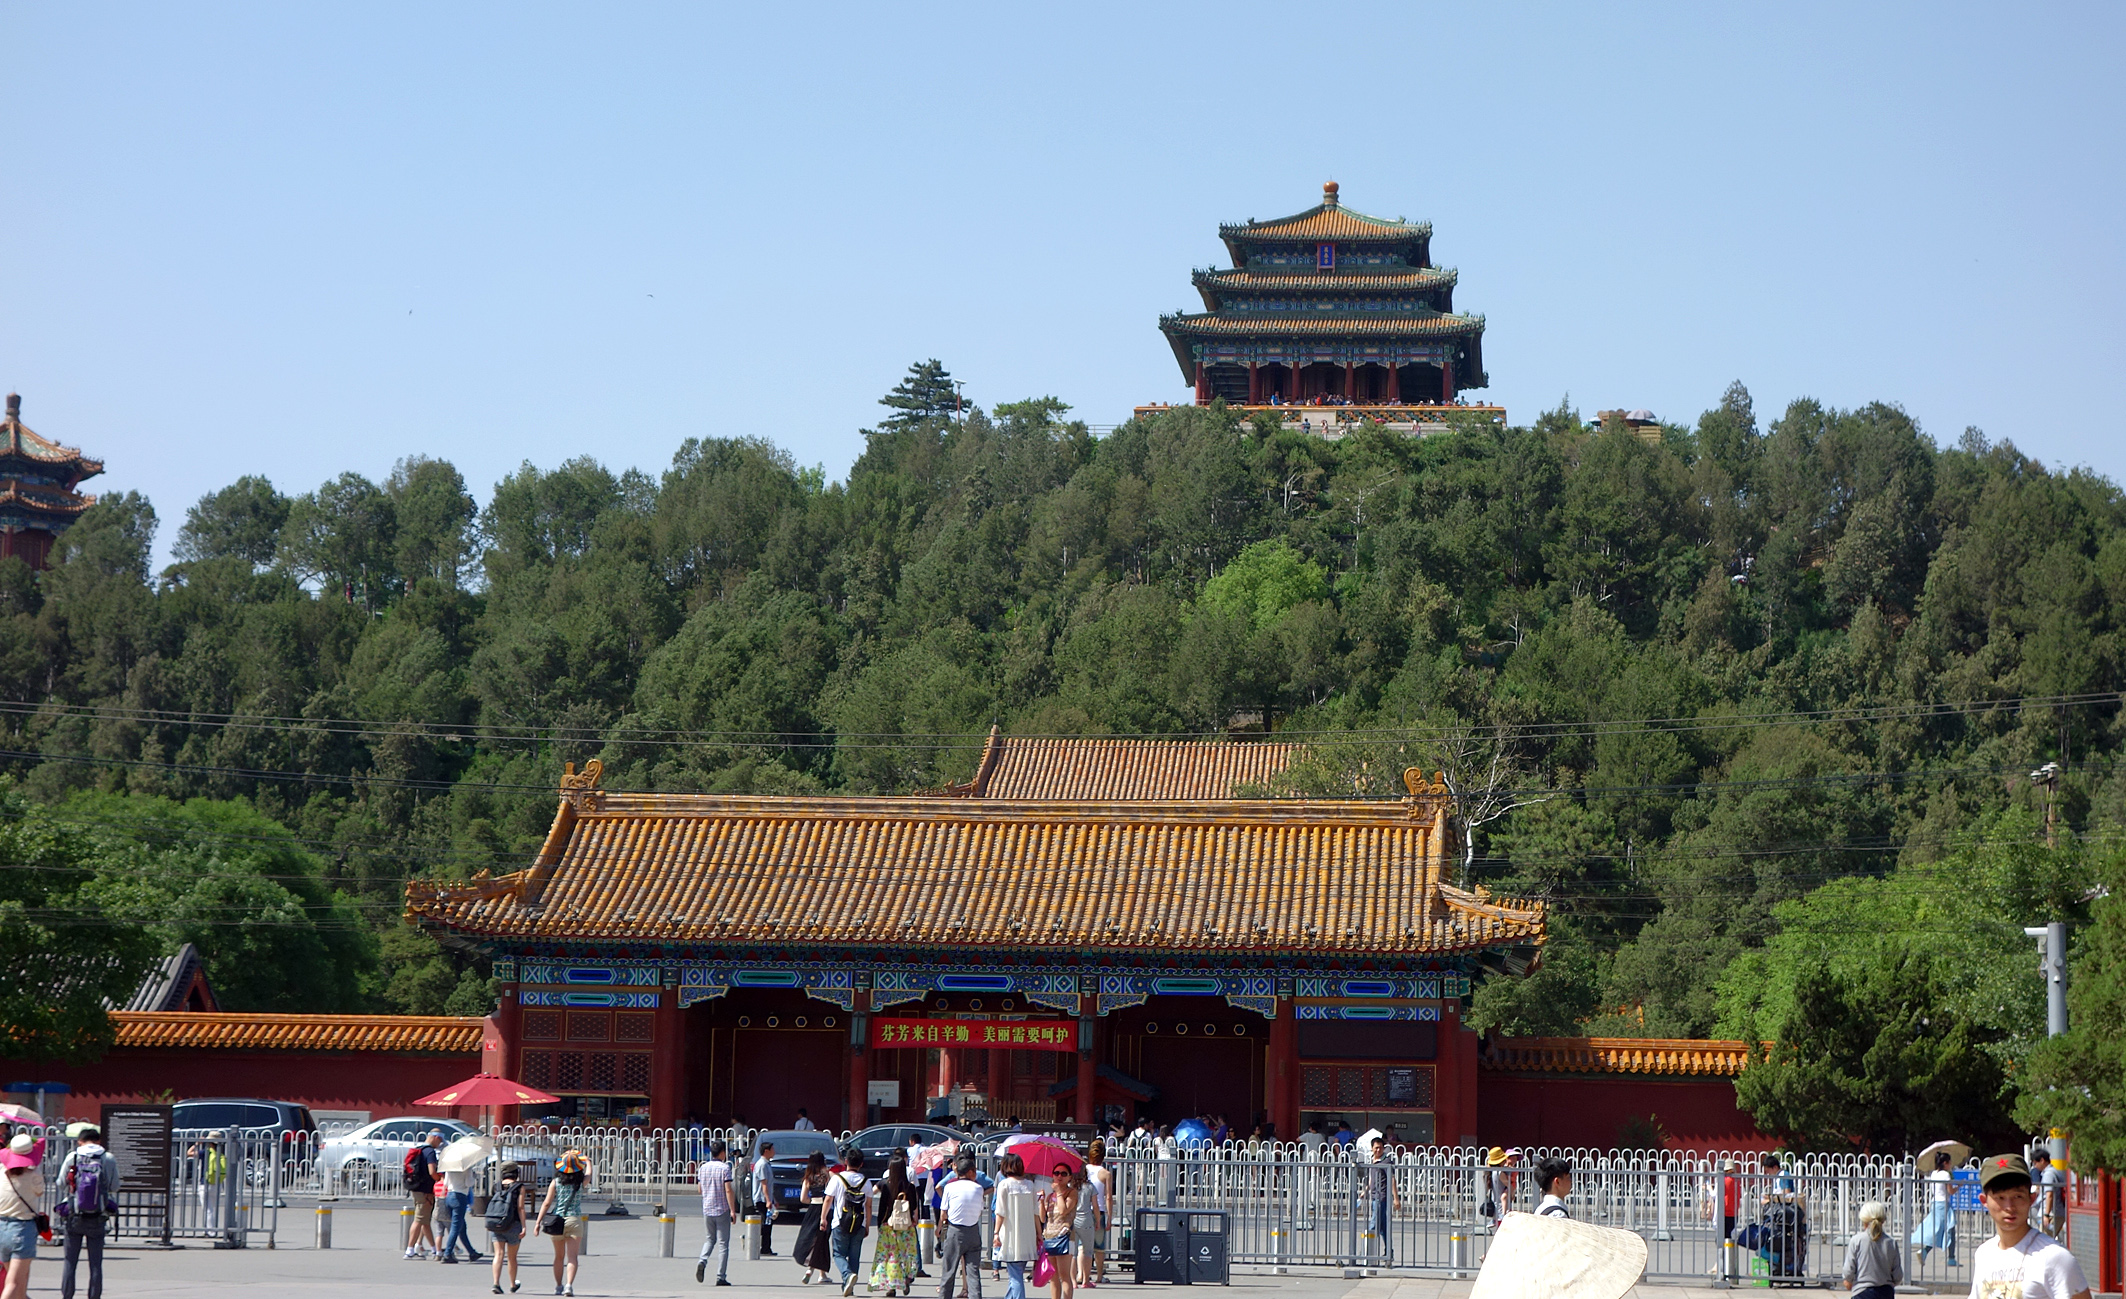 Beijing: Jingshan Hill, formed from spoil from the moat